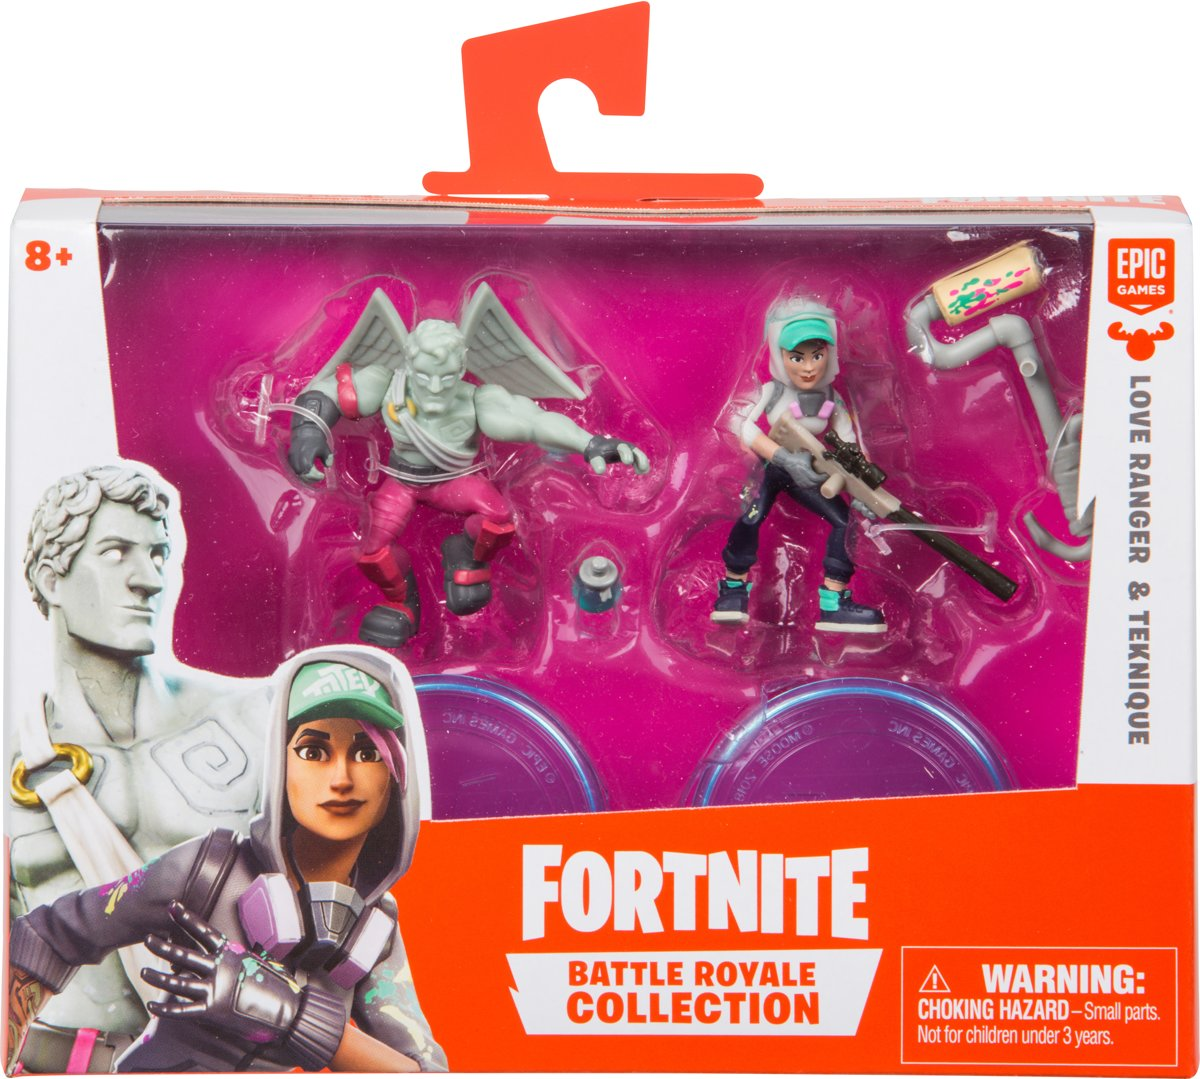 Fortnite Teknique en Love Range - Speelfiguren